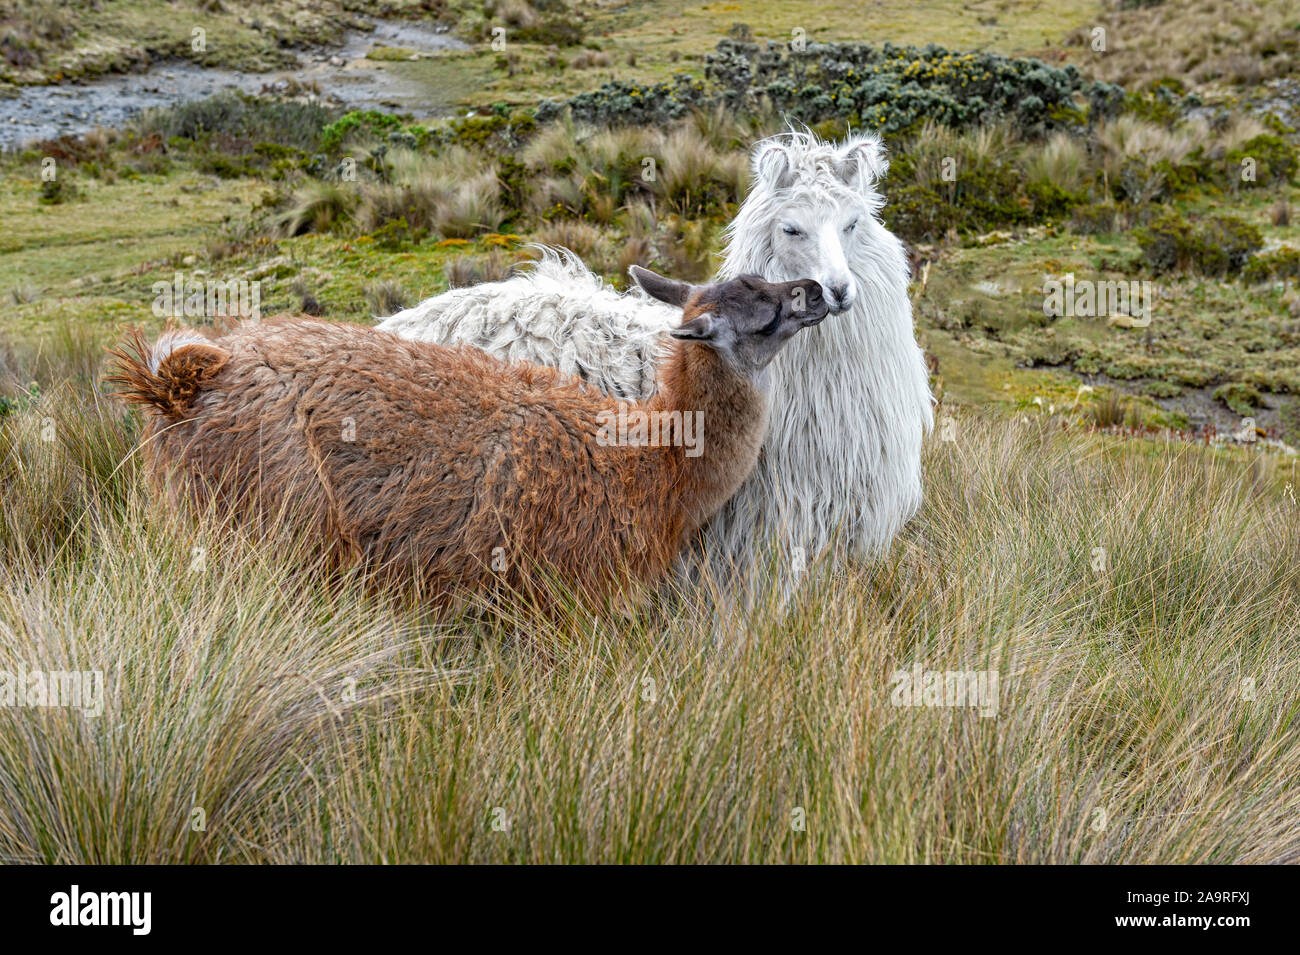 two-affectionate-llamas-lama-glama-kissing-in-the-andes-mountains-ecuador-2A9RFXJ.jpg